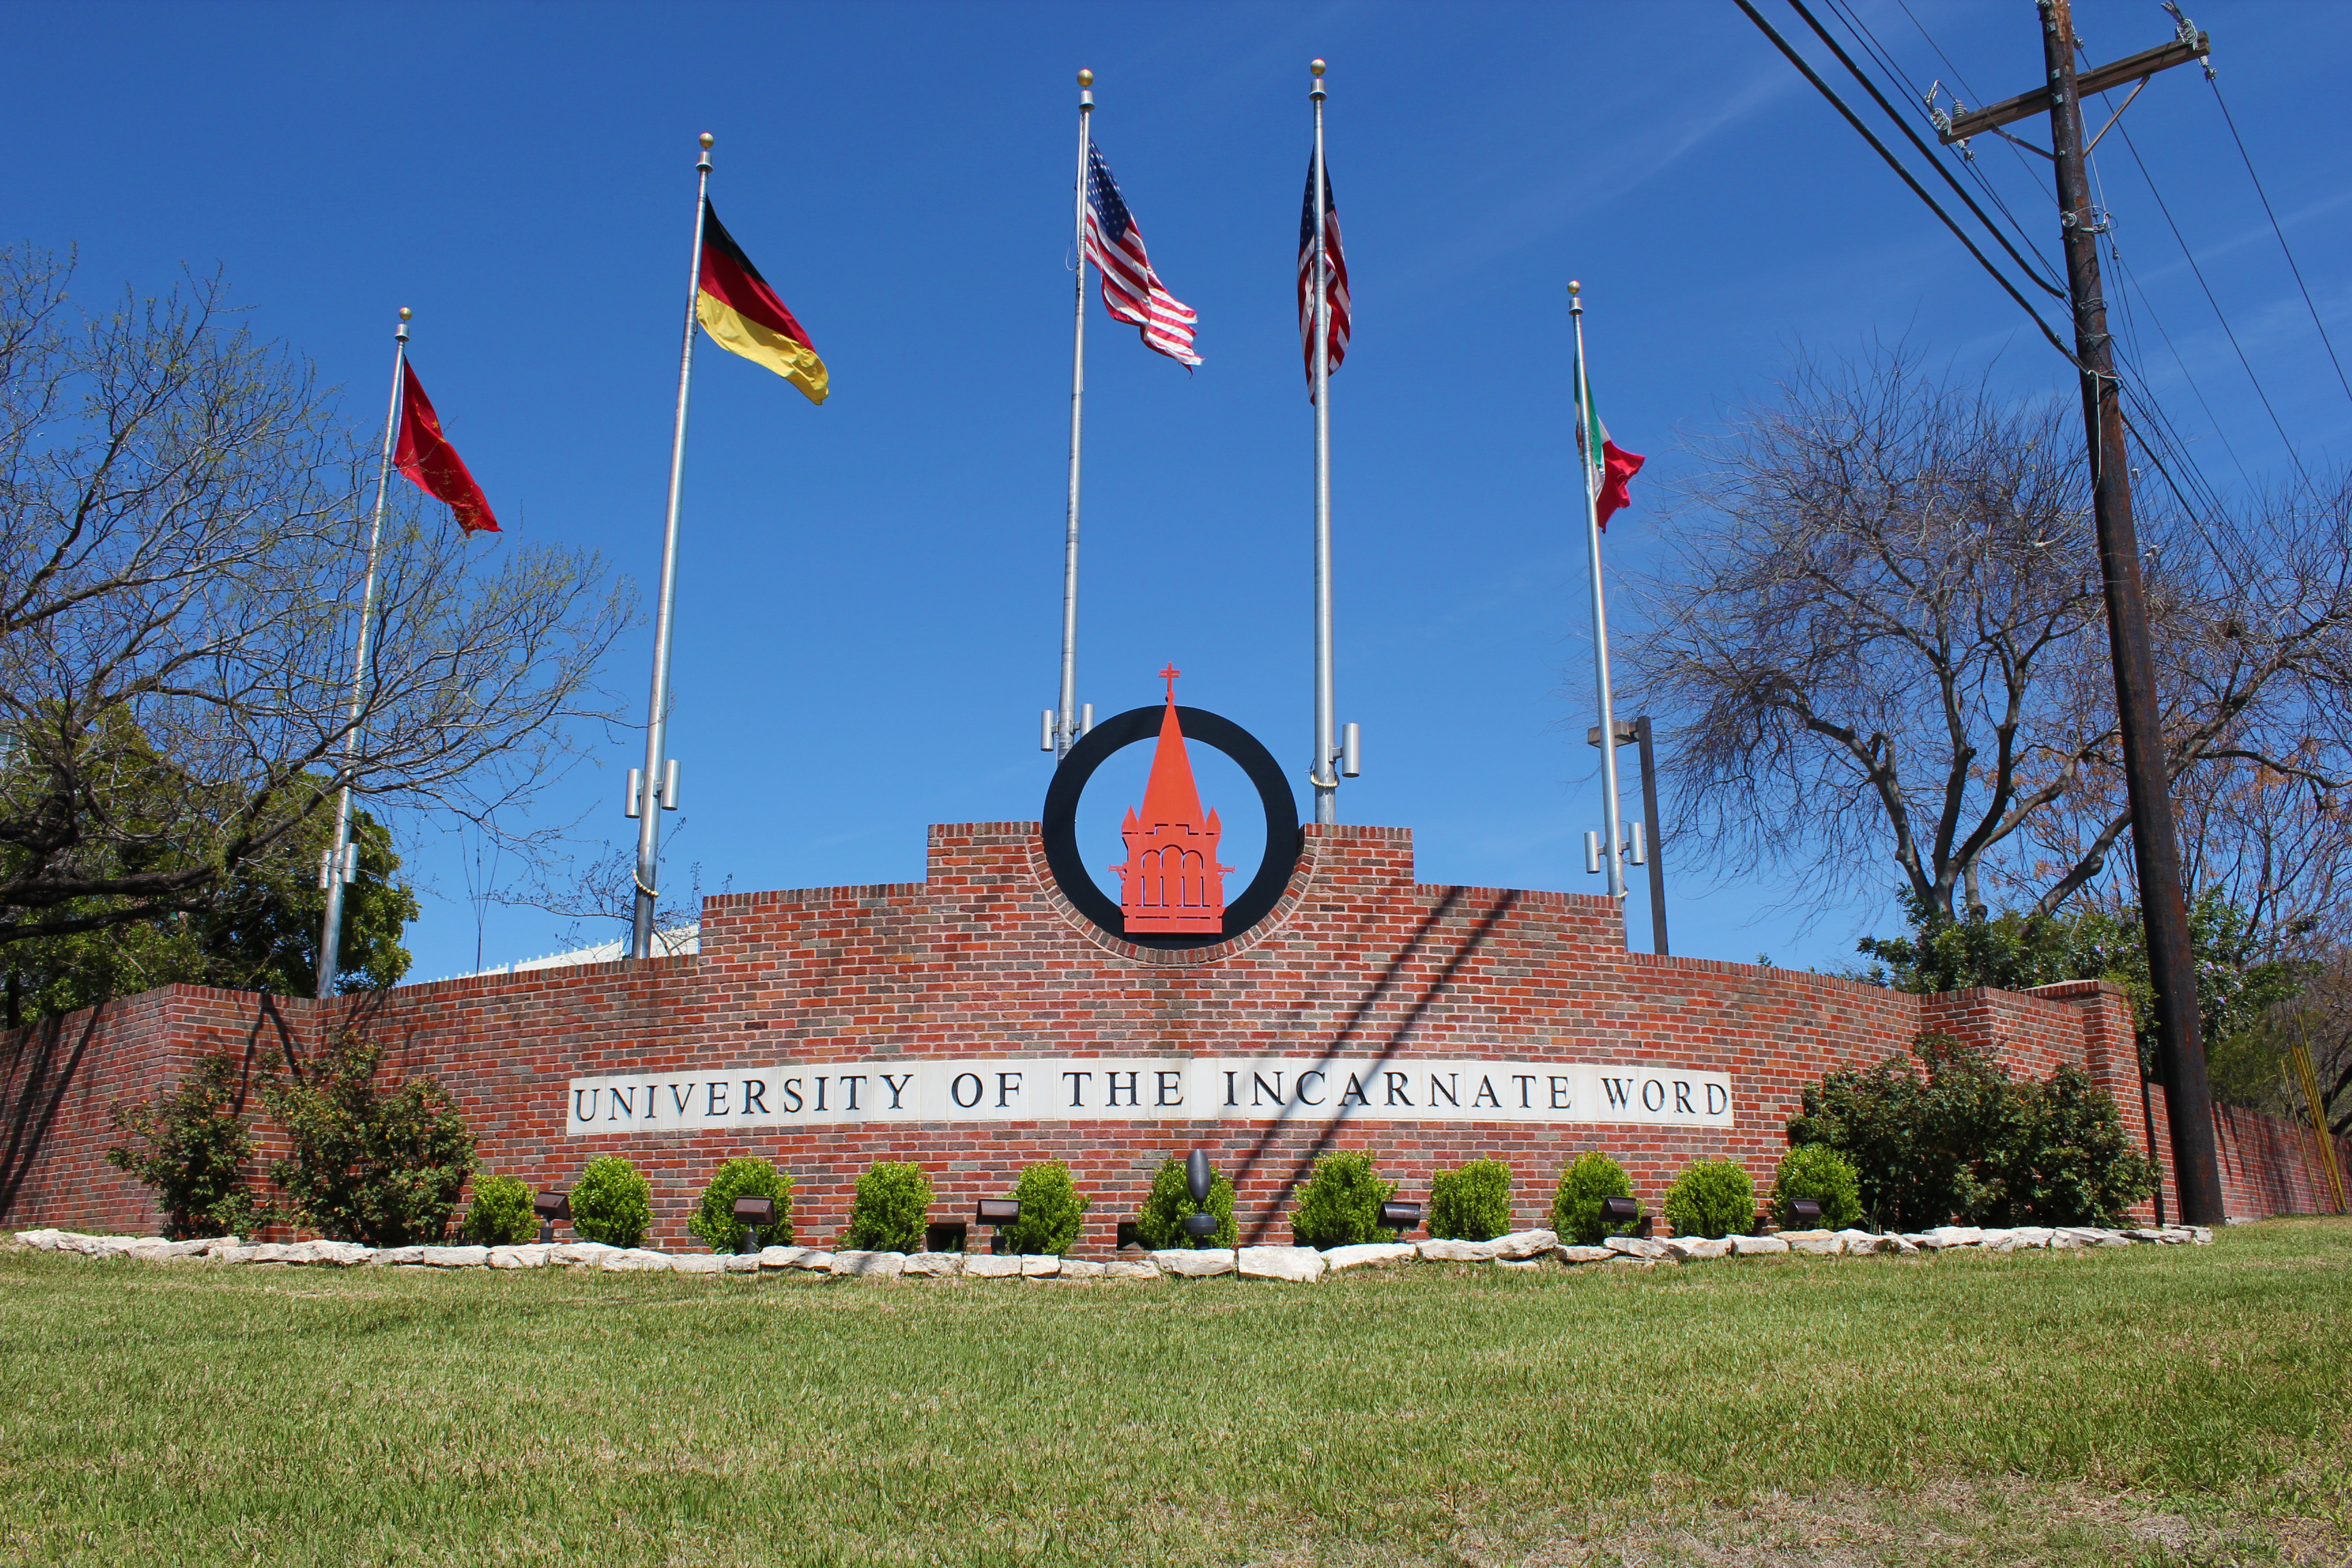 University Of The Incarnate Word Texas Usa College And University